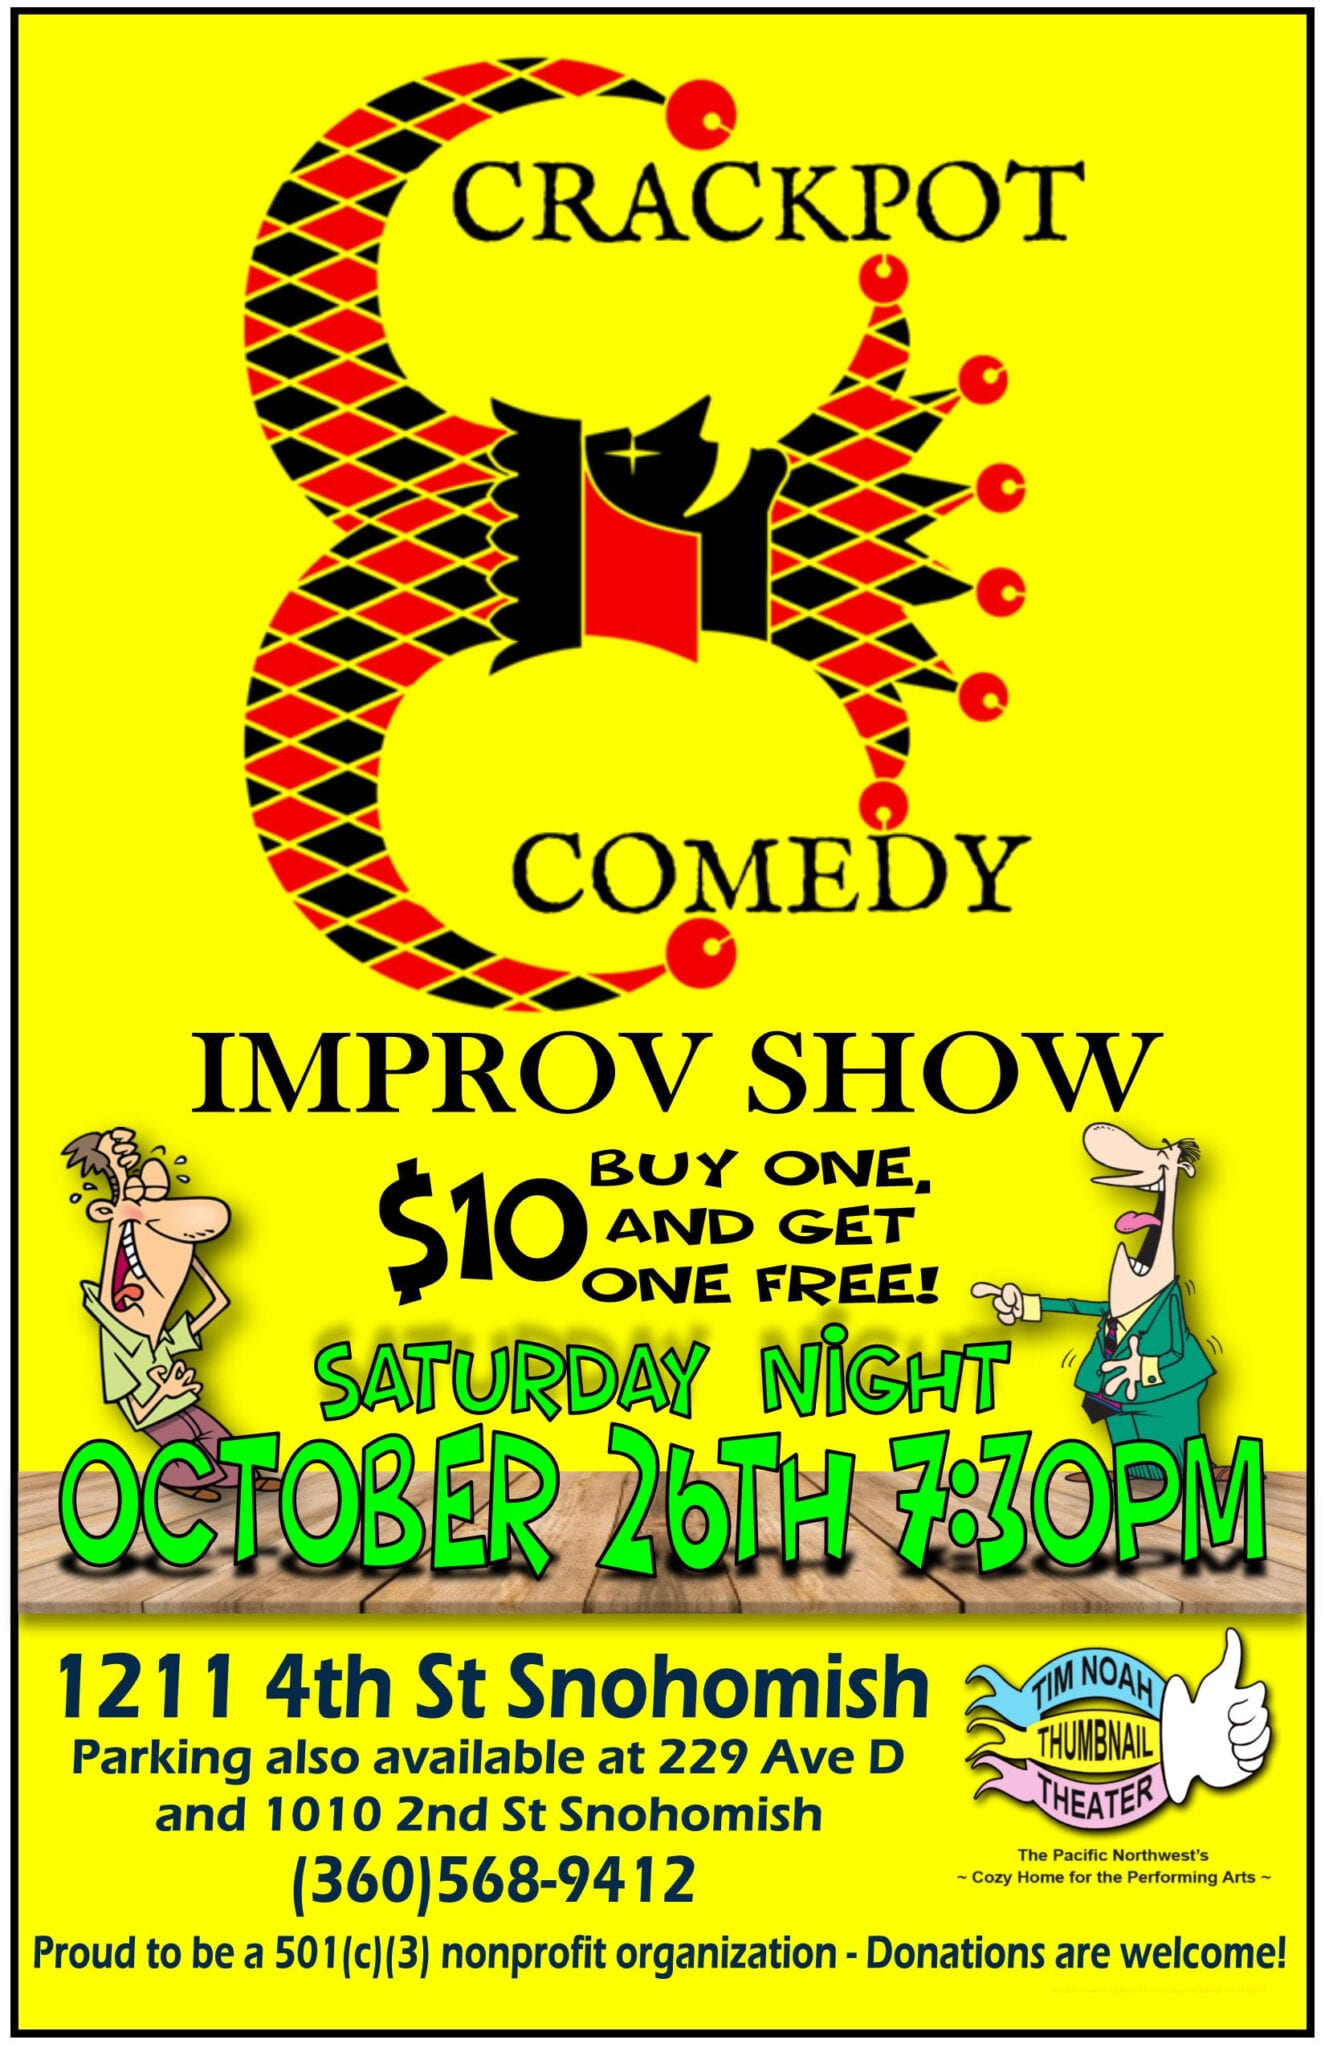 Improv Comedy Show, Saturday, October 26th, at 7:30 PM at the Tim Noah Thumbnail Theater. BOGO Offer for only $10.